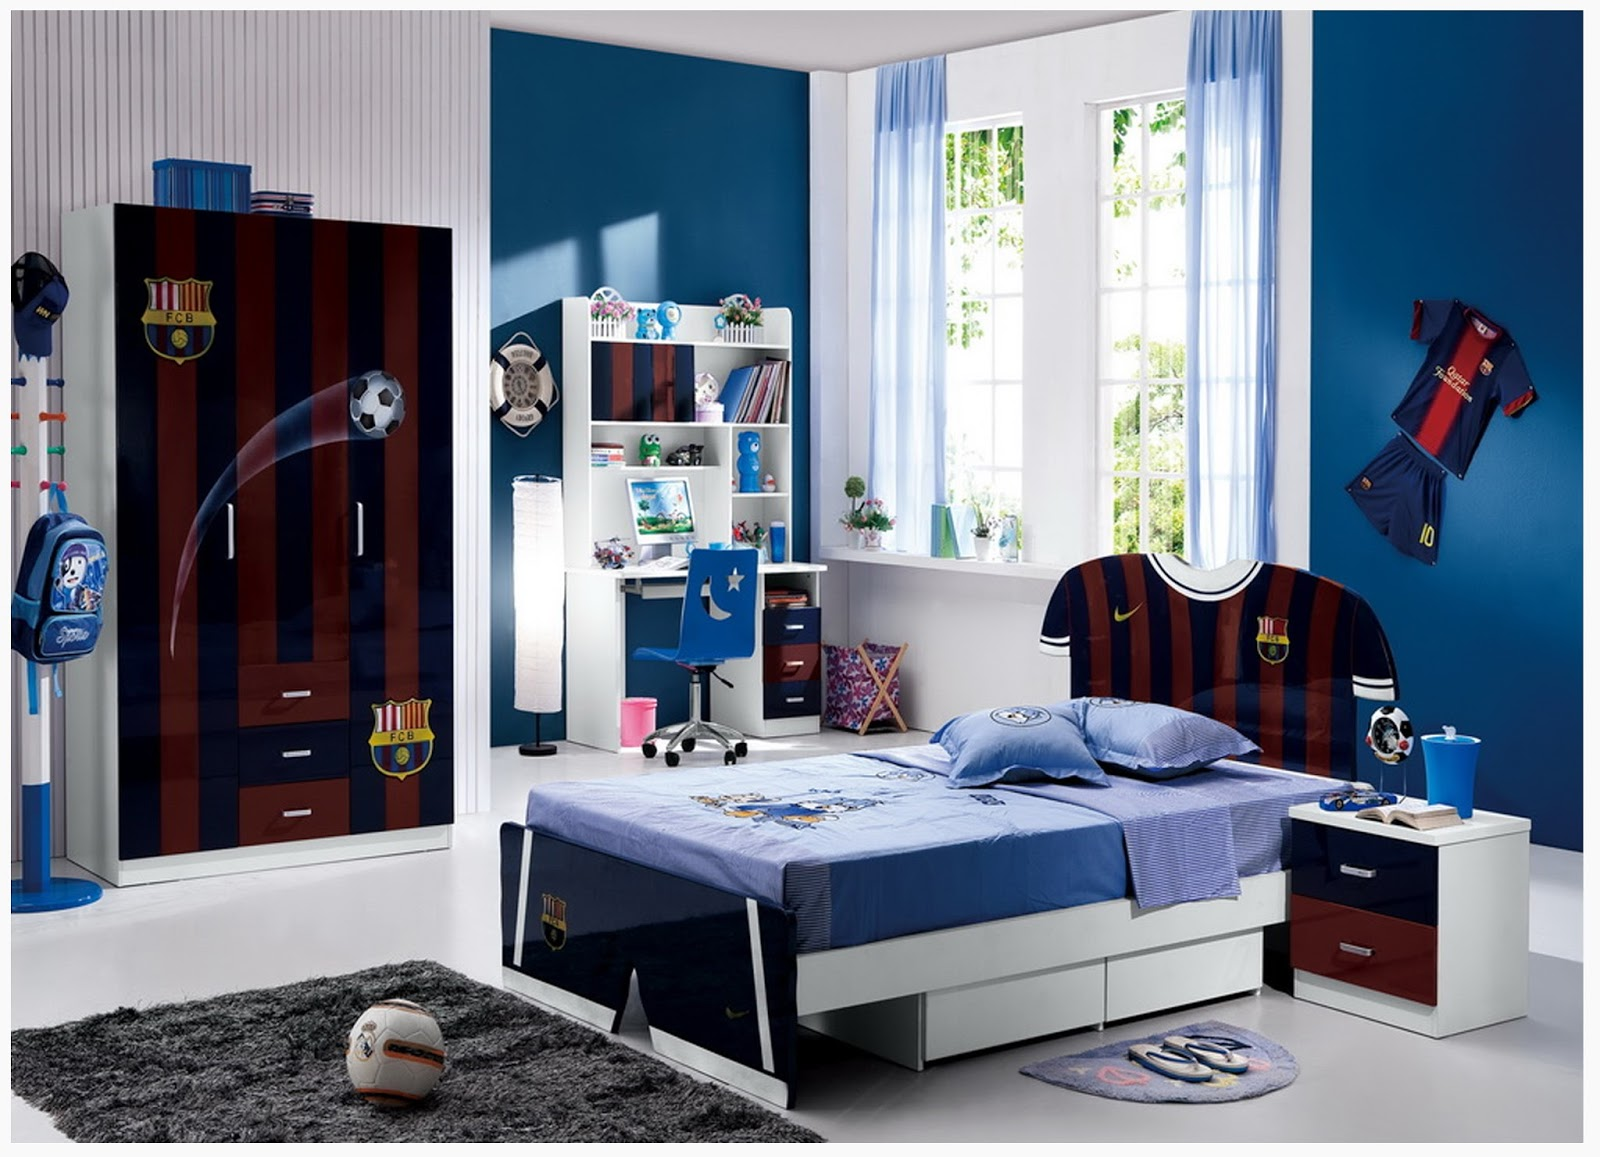 Cool Boys Bedroom Decoration With FC Barcelona Decor